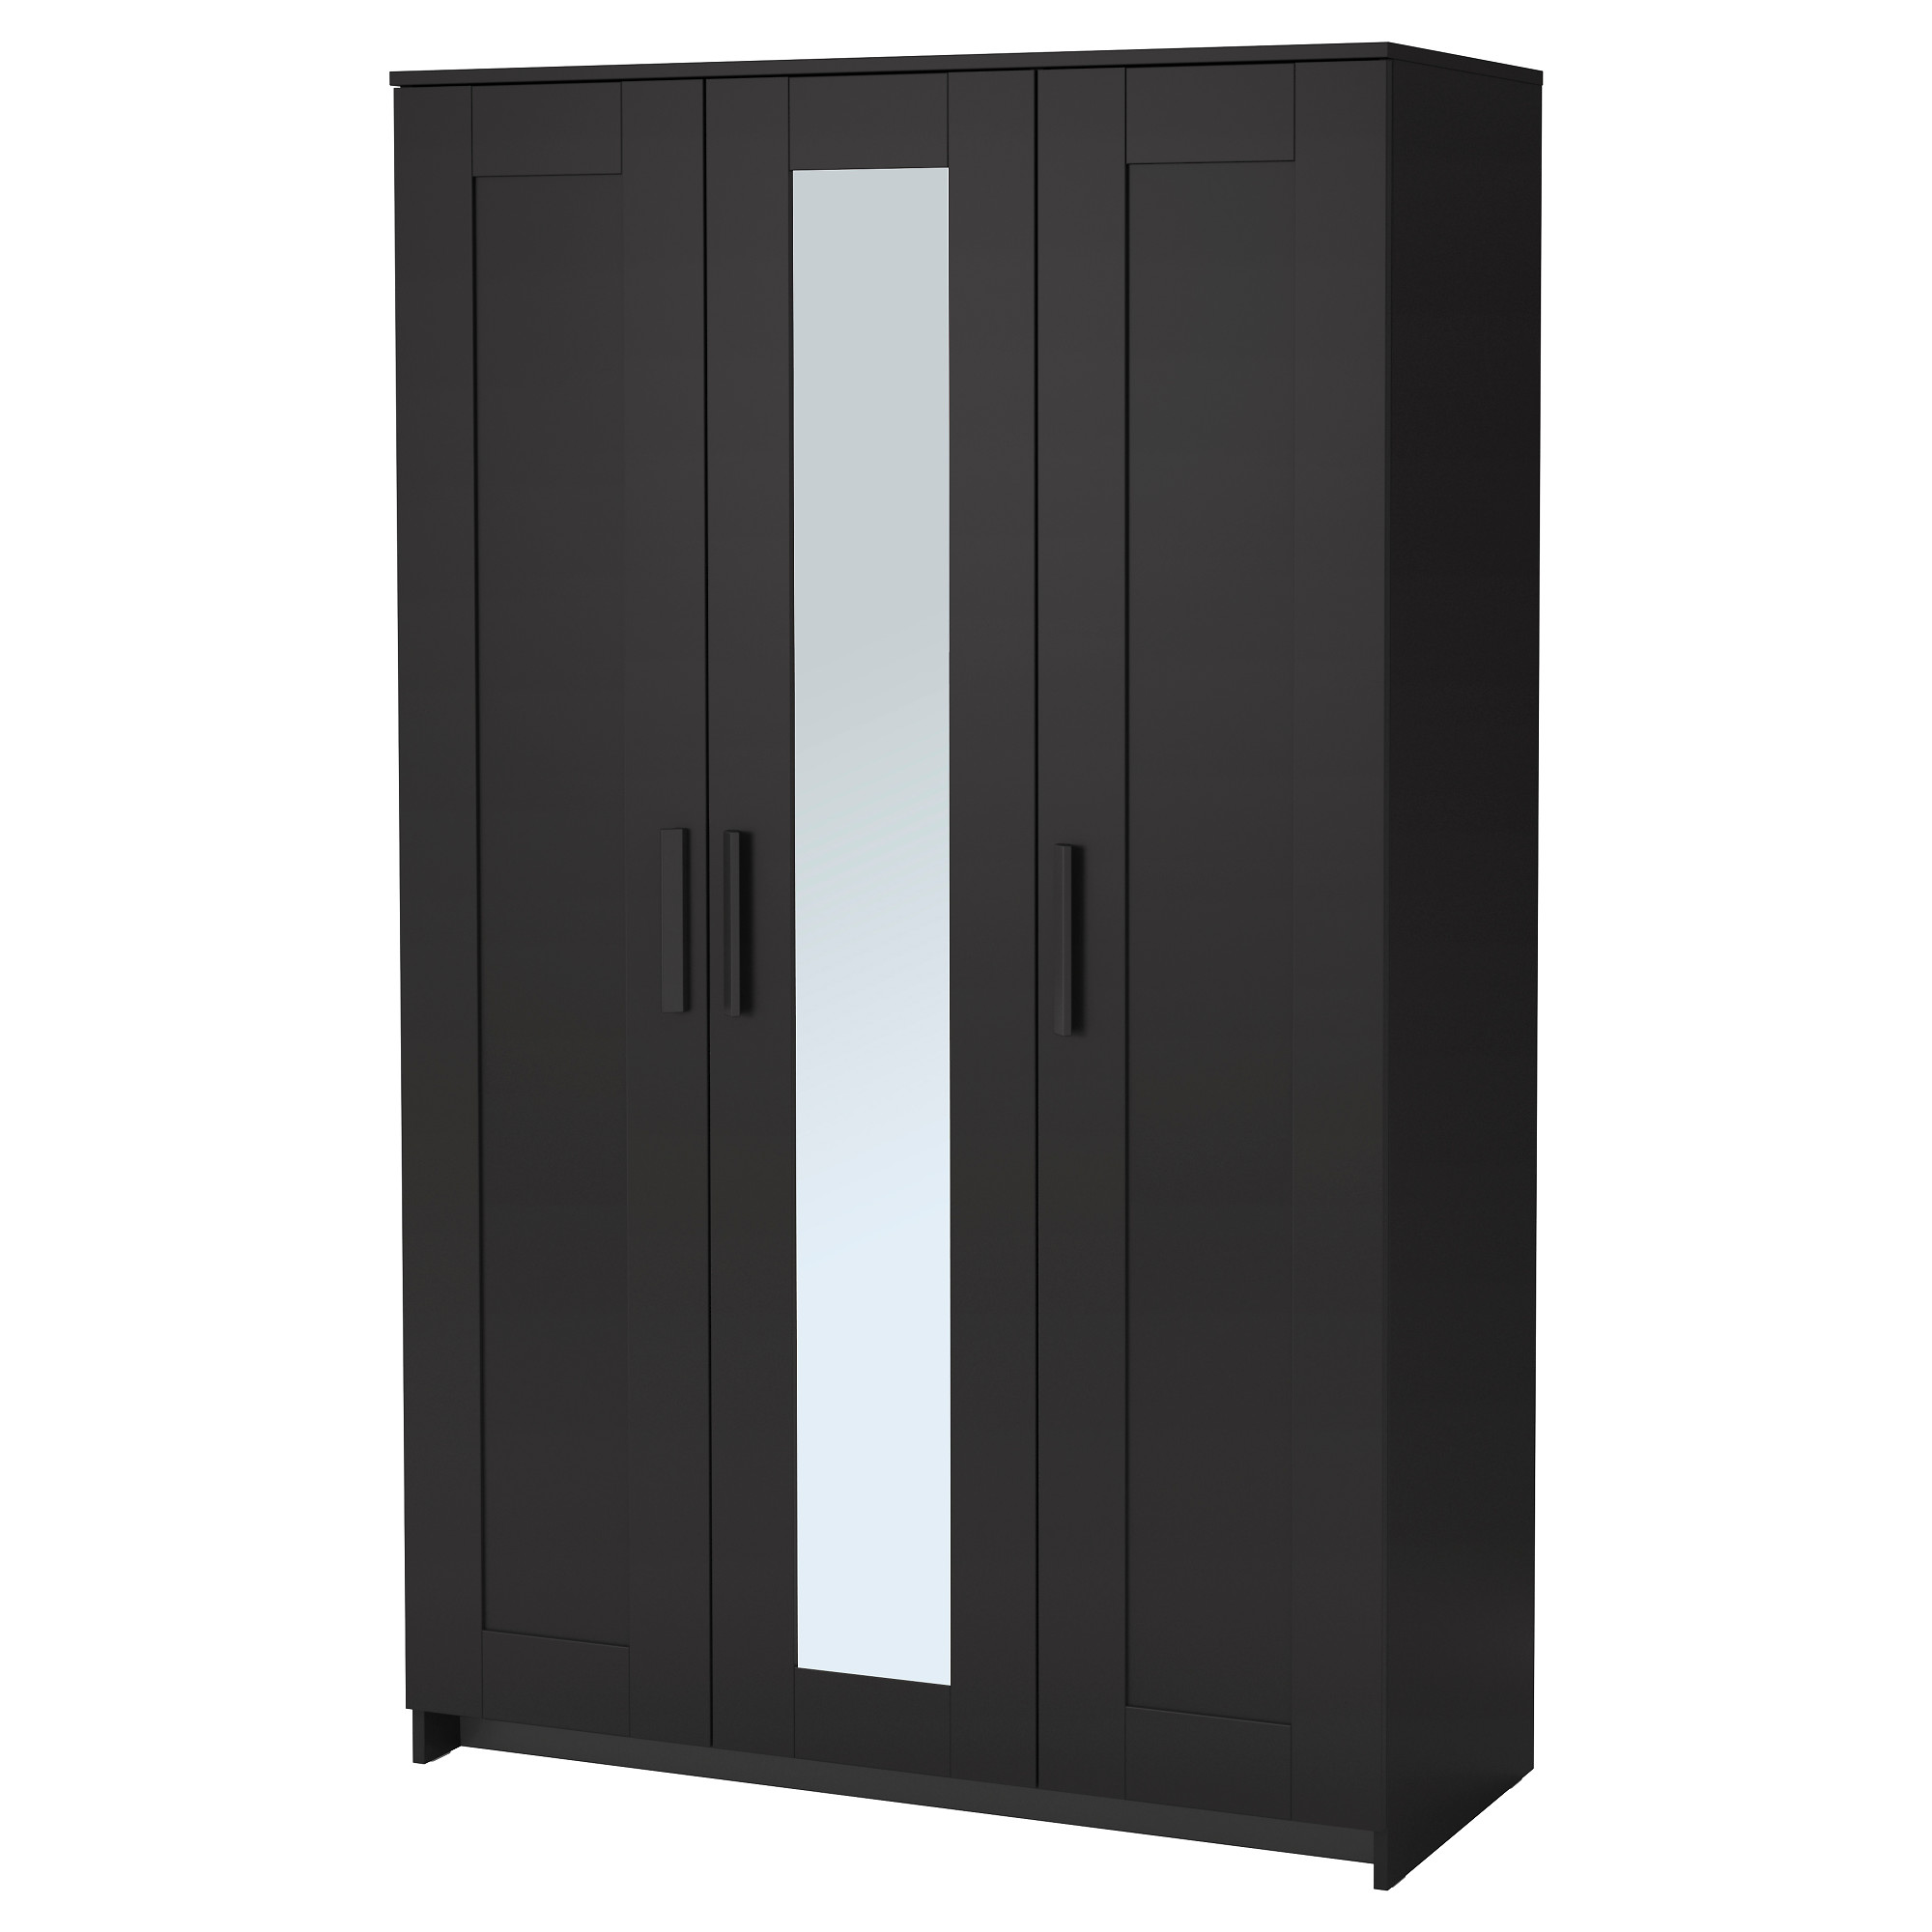 Adorable Brusali Wardrobe for Home Furniture Idea: Wardrobe Box | Brusali | Brusali Wardrobe